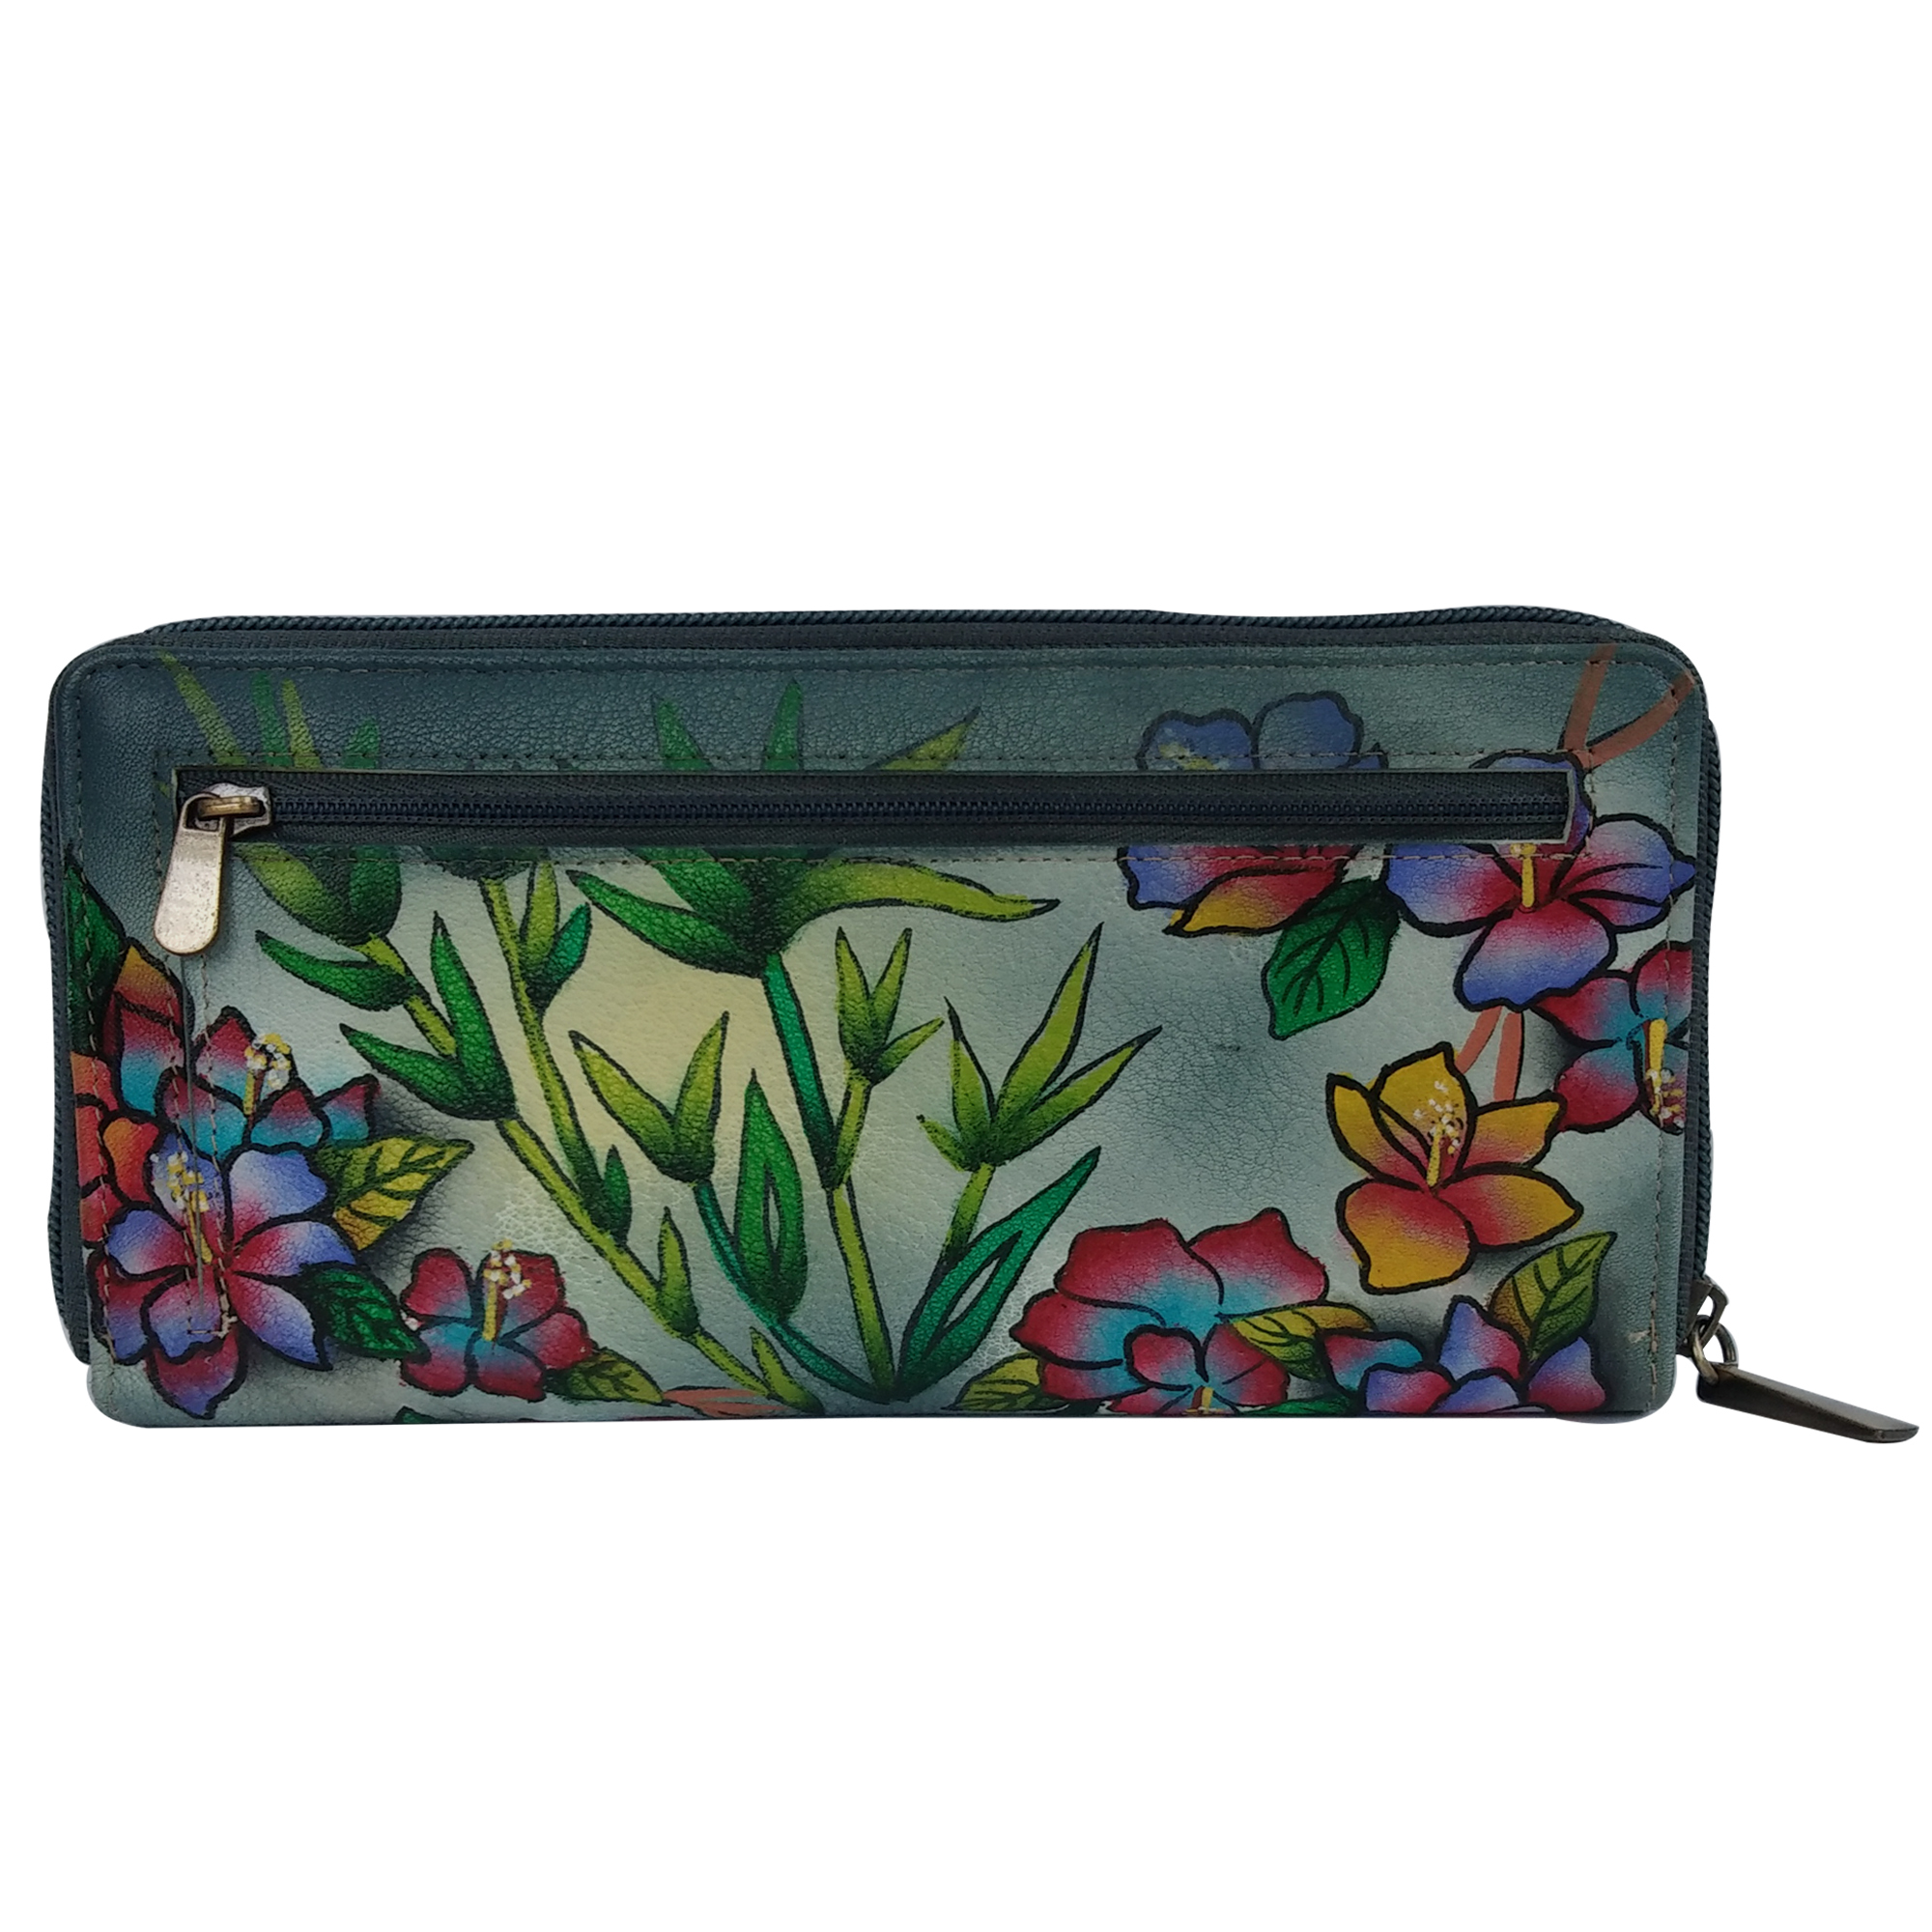 New Leather Hand Painted Zipper Wallet For Women